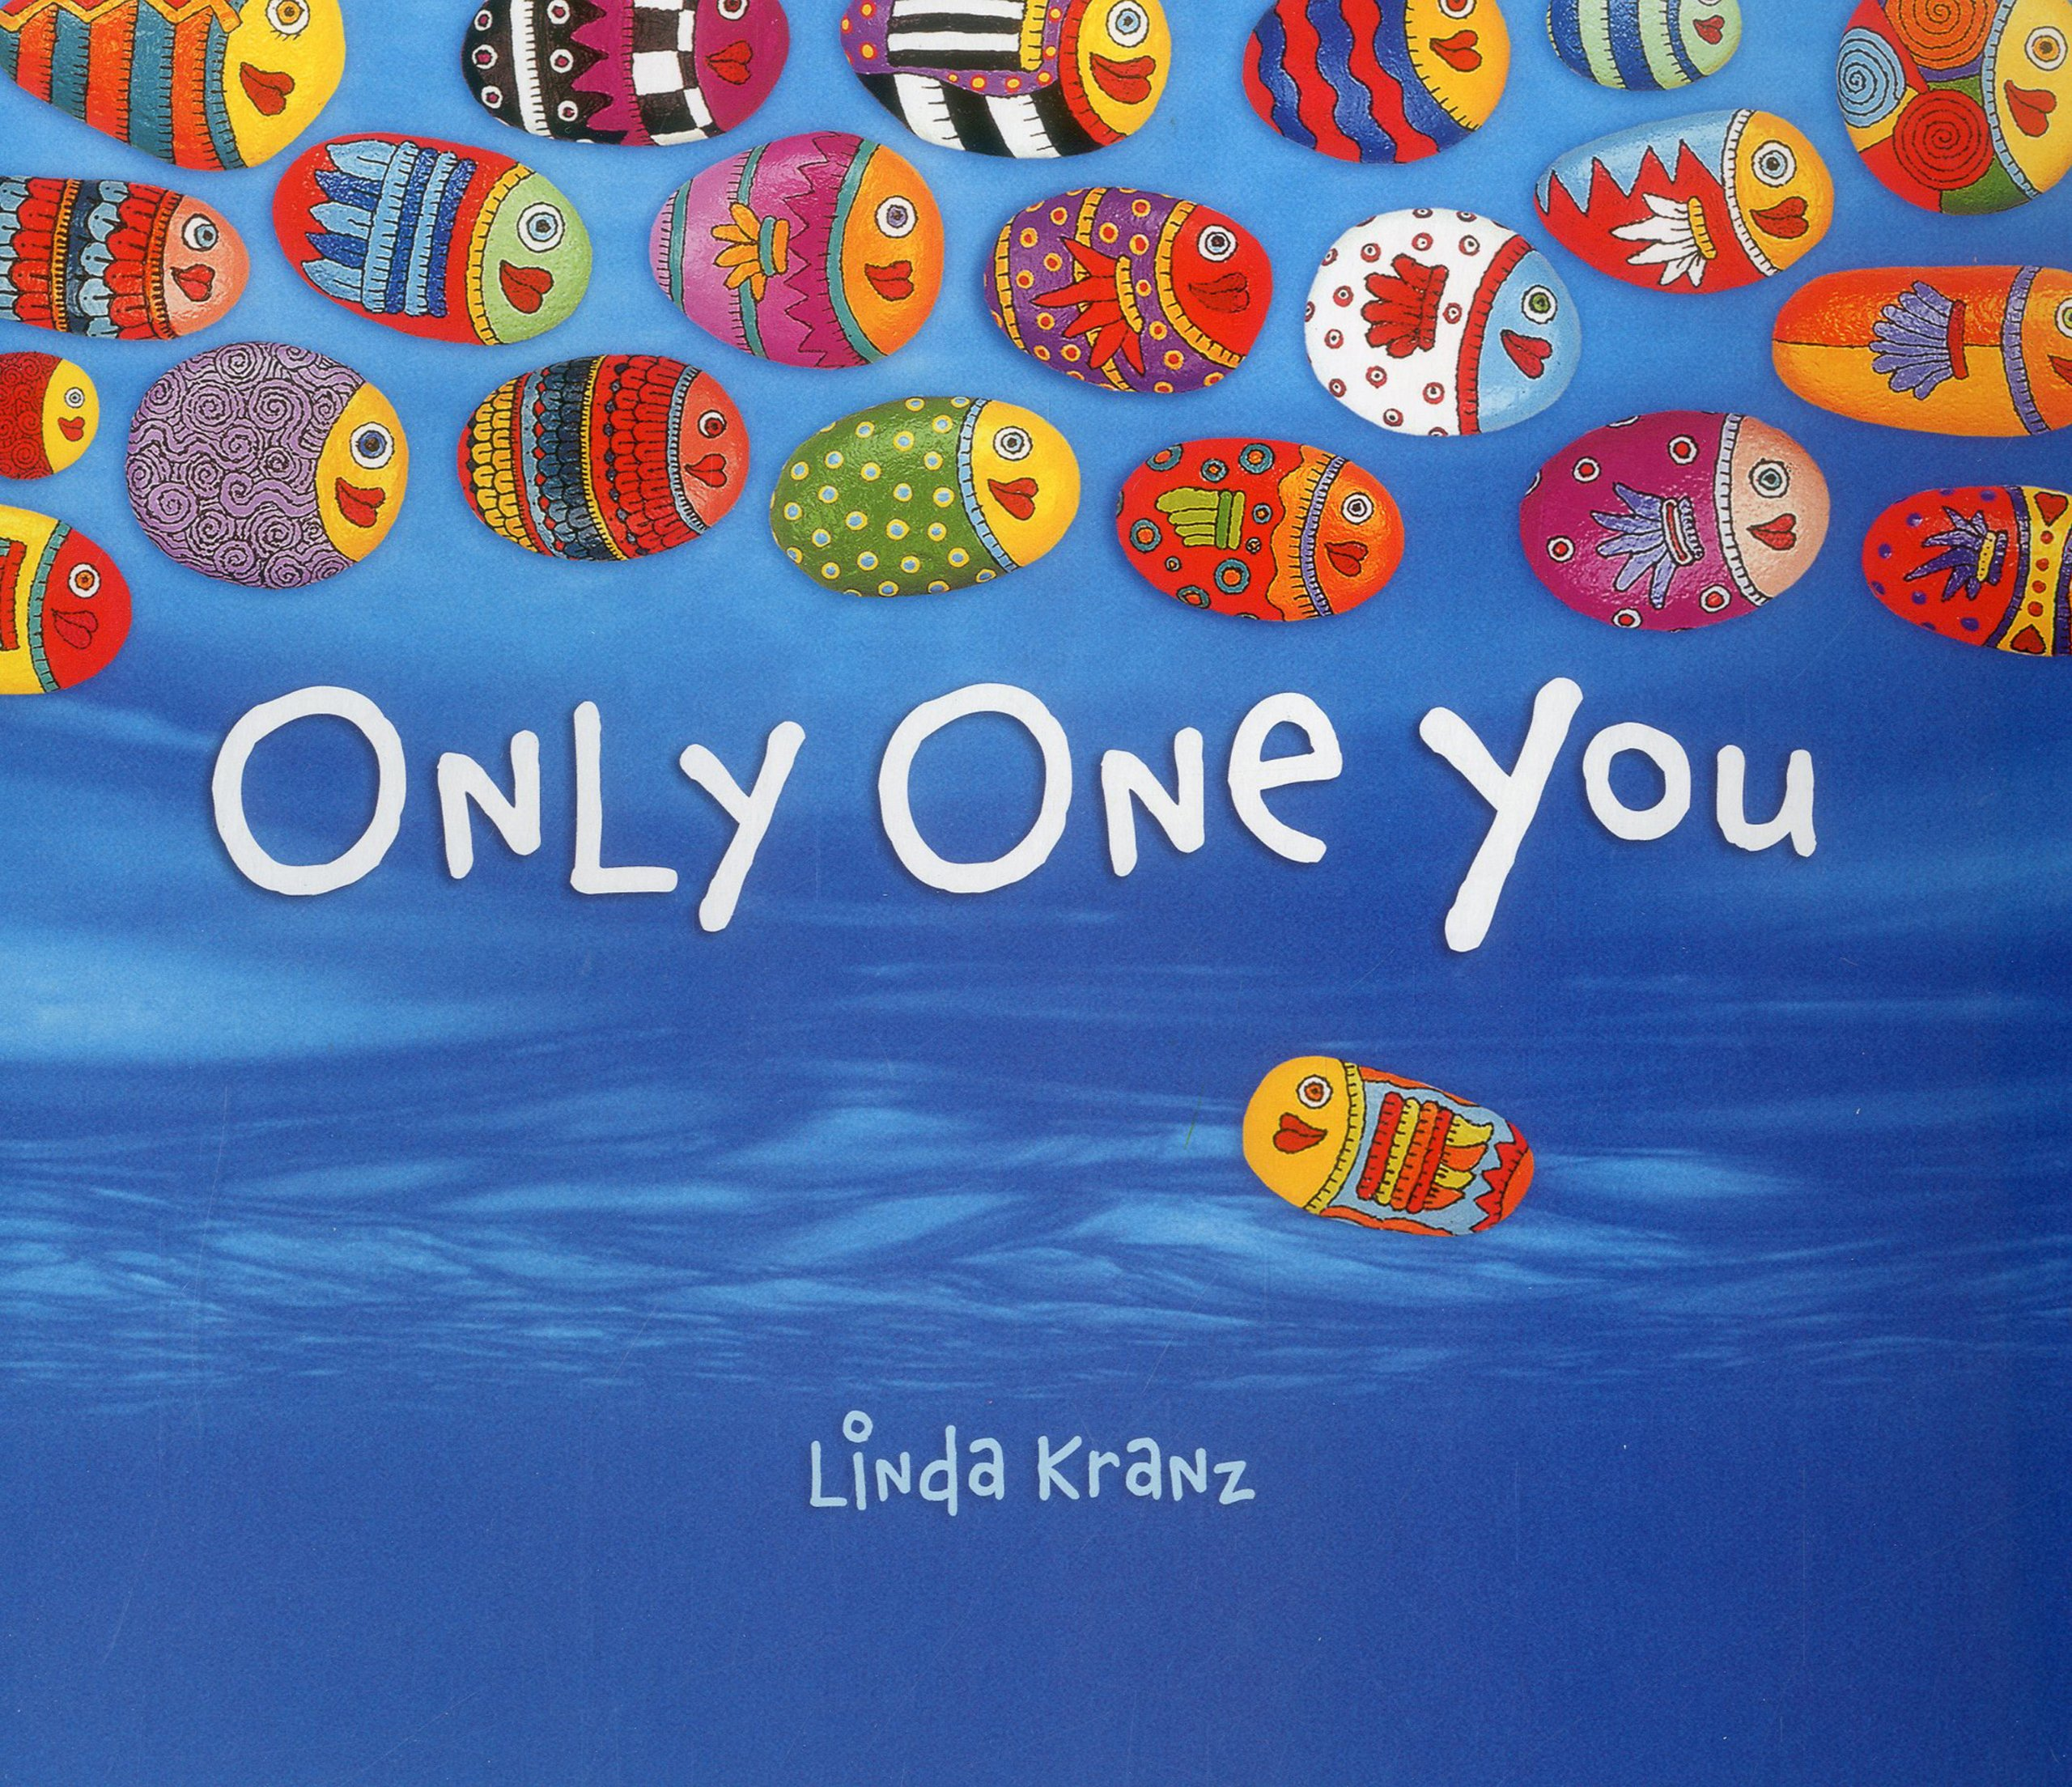 Image result for only one you book cover